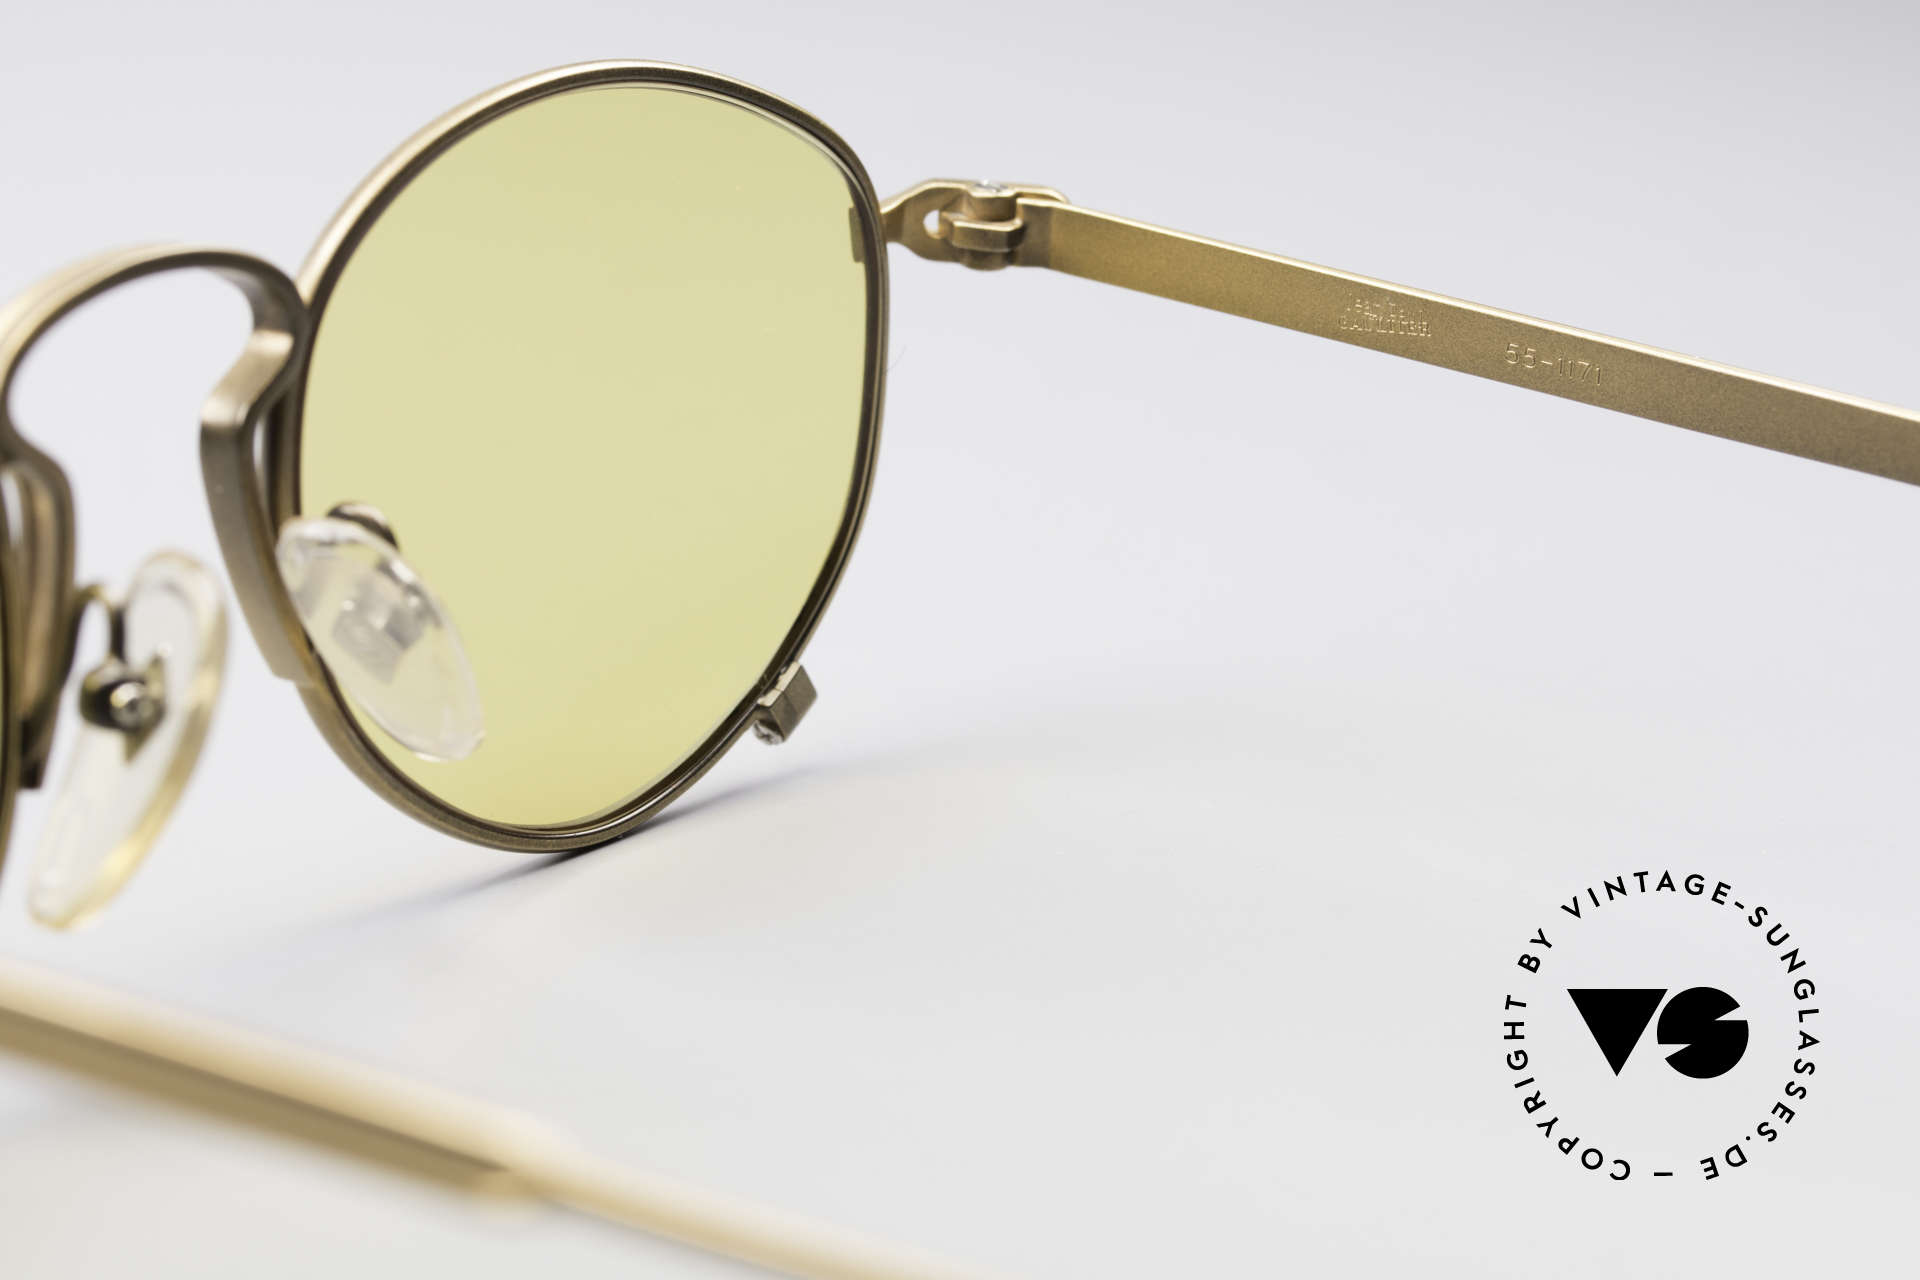 Jean Paul Gaultier 55-1171 Extraordinary Vintage Frame, the frame can be glazed with optical (sun) lenses, Made for Men and Women